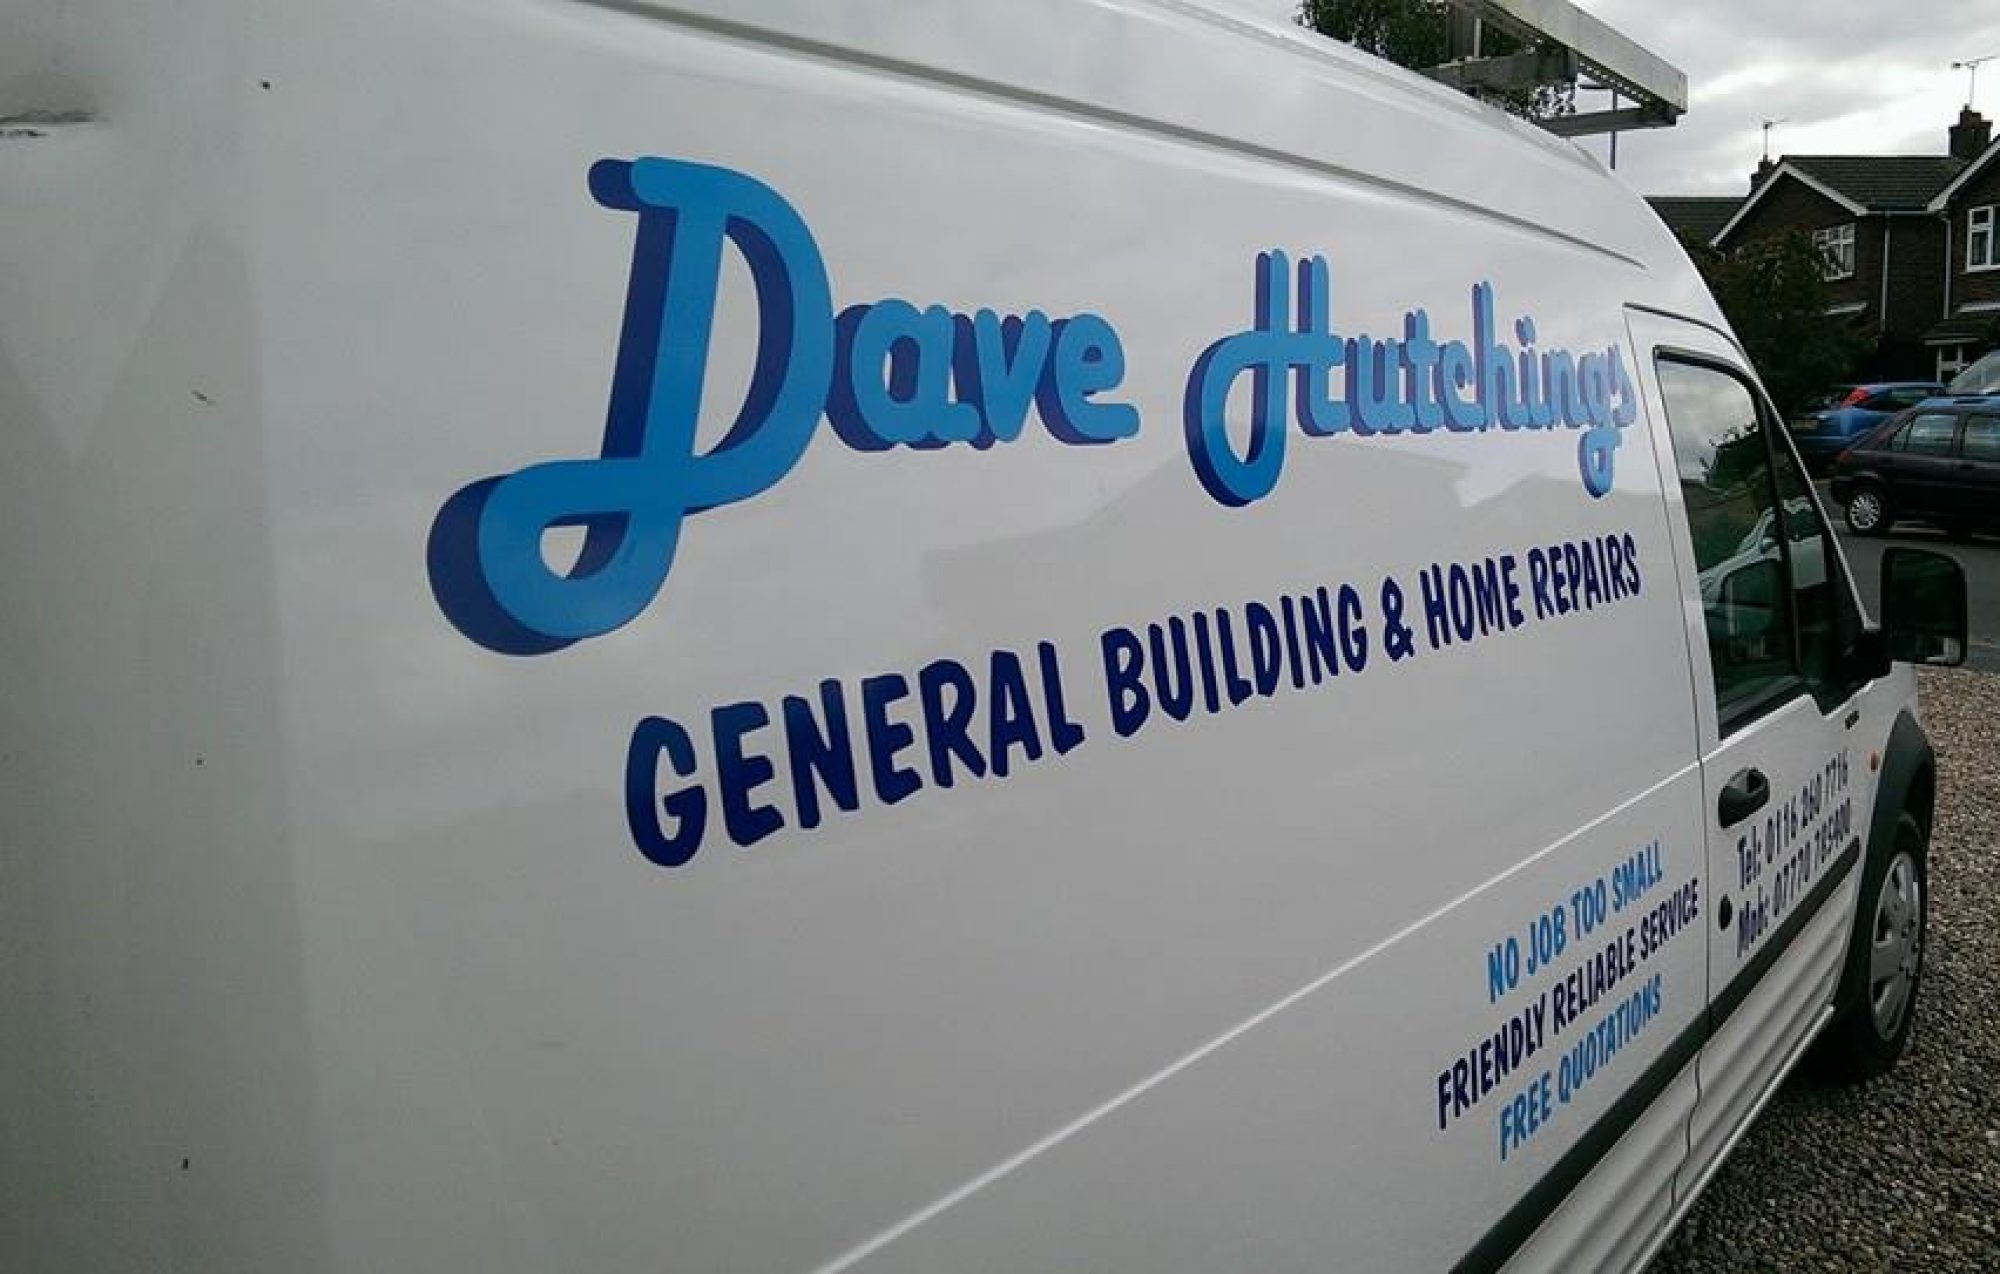 Dave Hutchings General Building & Home Repairs